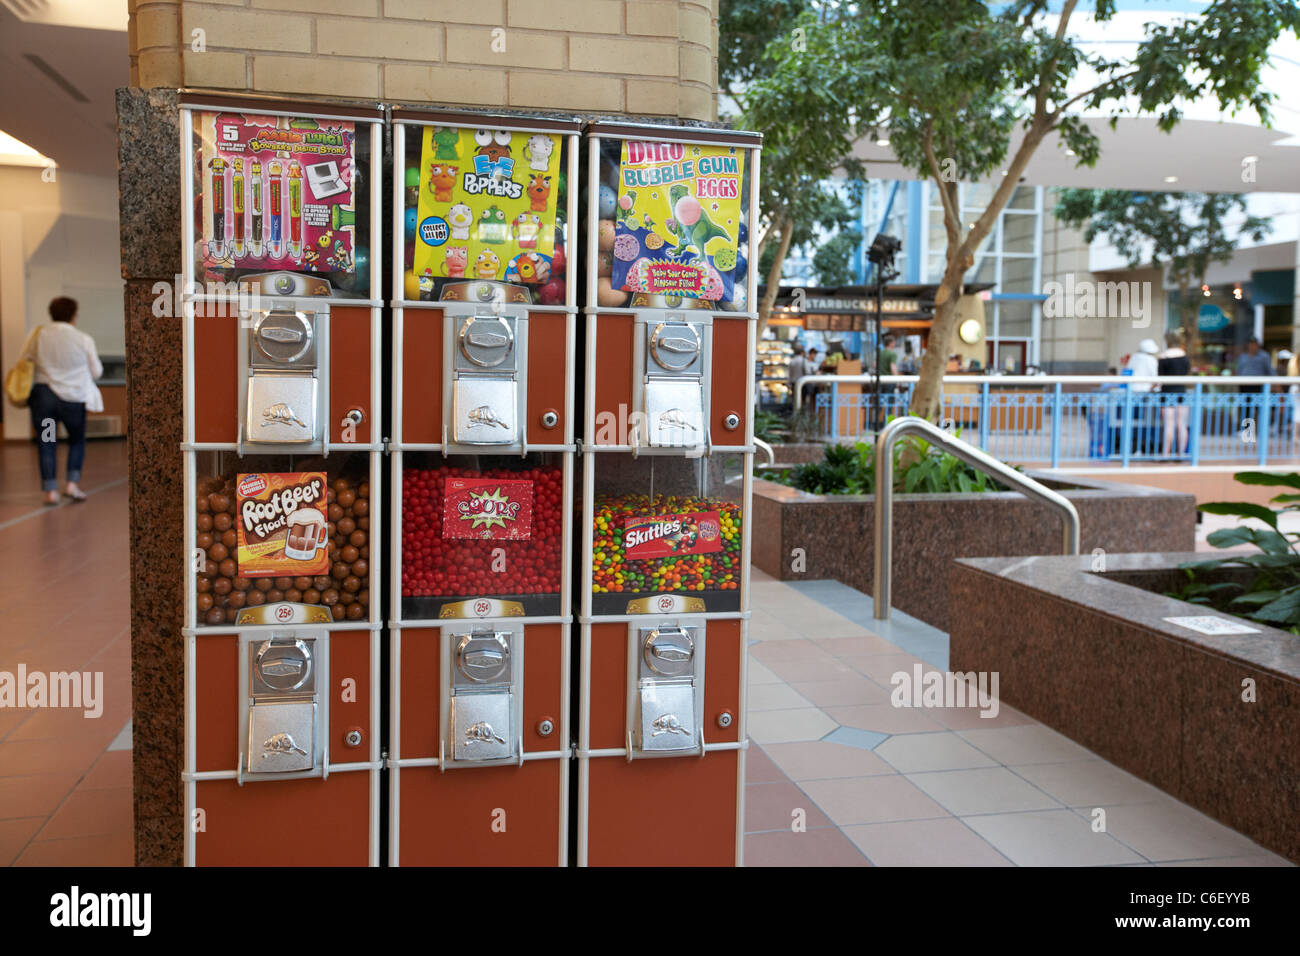 candy sweets coin operated dispensers in a shopping centre mall winnipeg manitoba canada - Stock Image